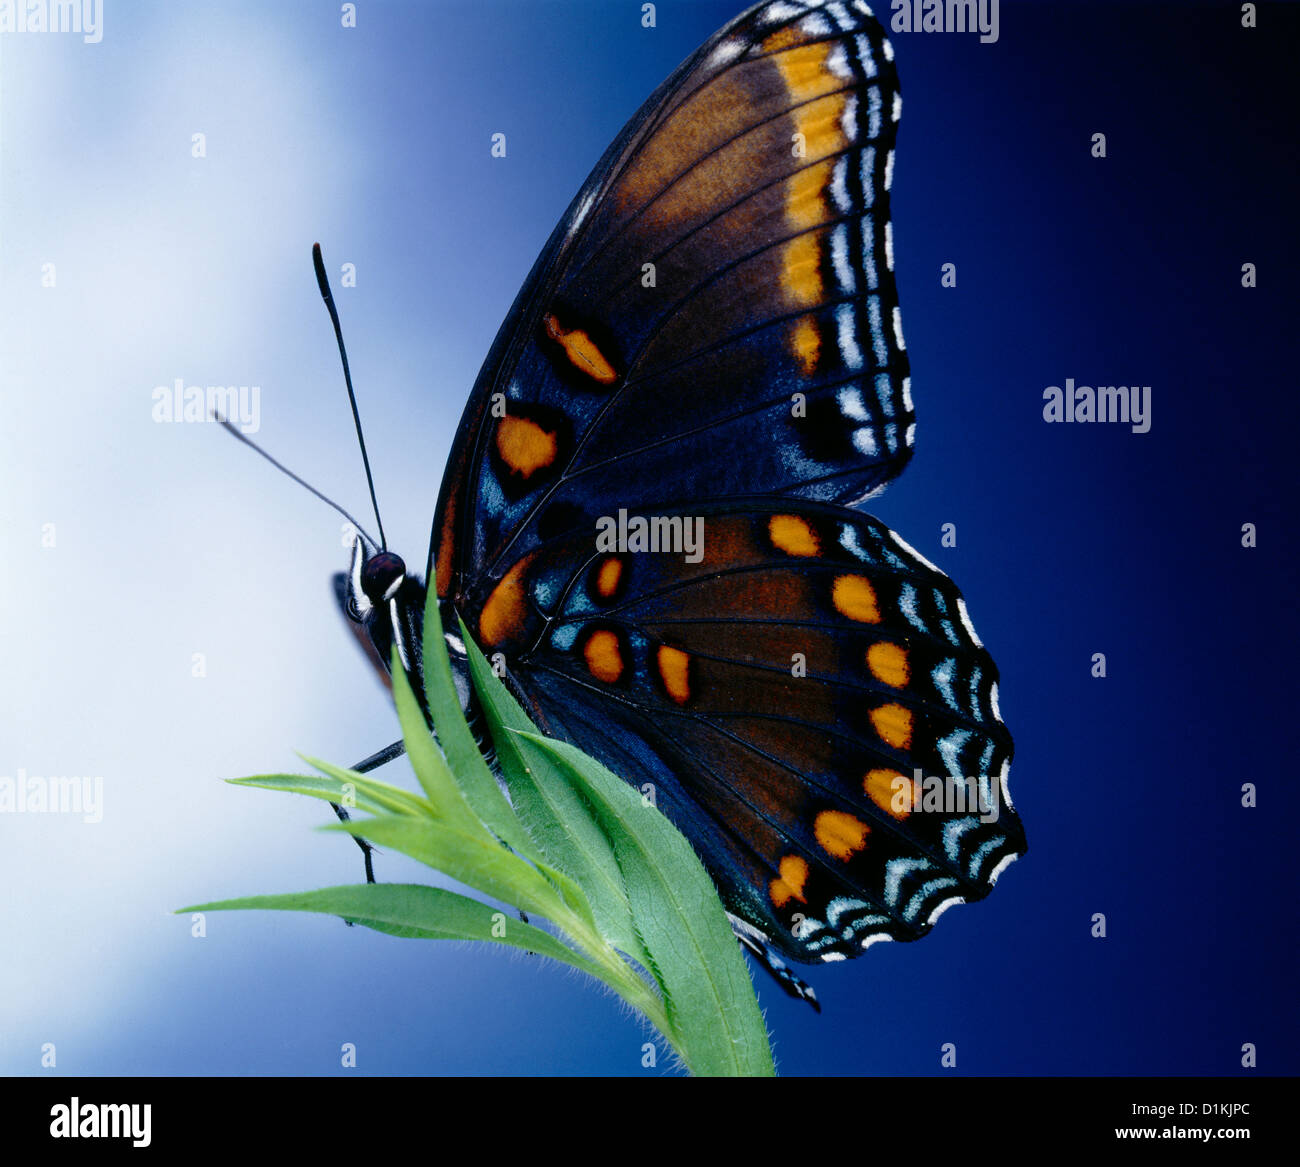 RED-SPOTTED PURPLE BUTTERFLY (LIMENITIS ARTHEMIS ASTYANOX) COLORFUL, BEAUTIFUL ADULT ON PLANT - Stock Image